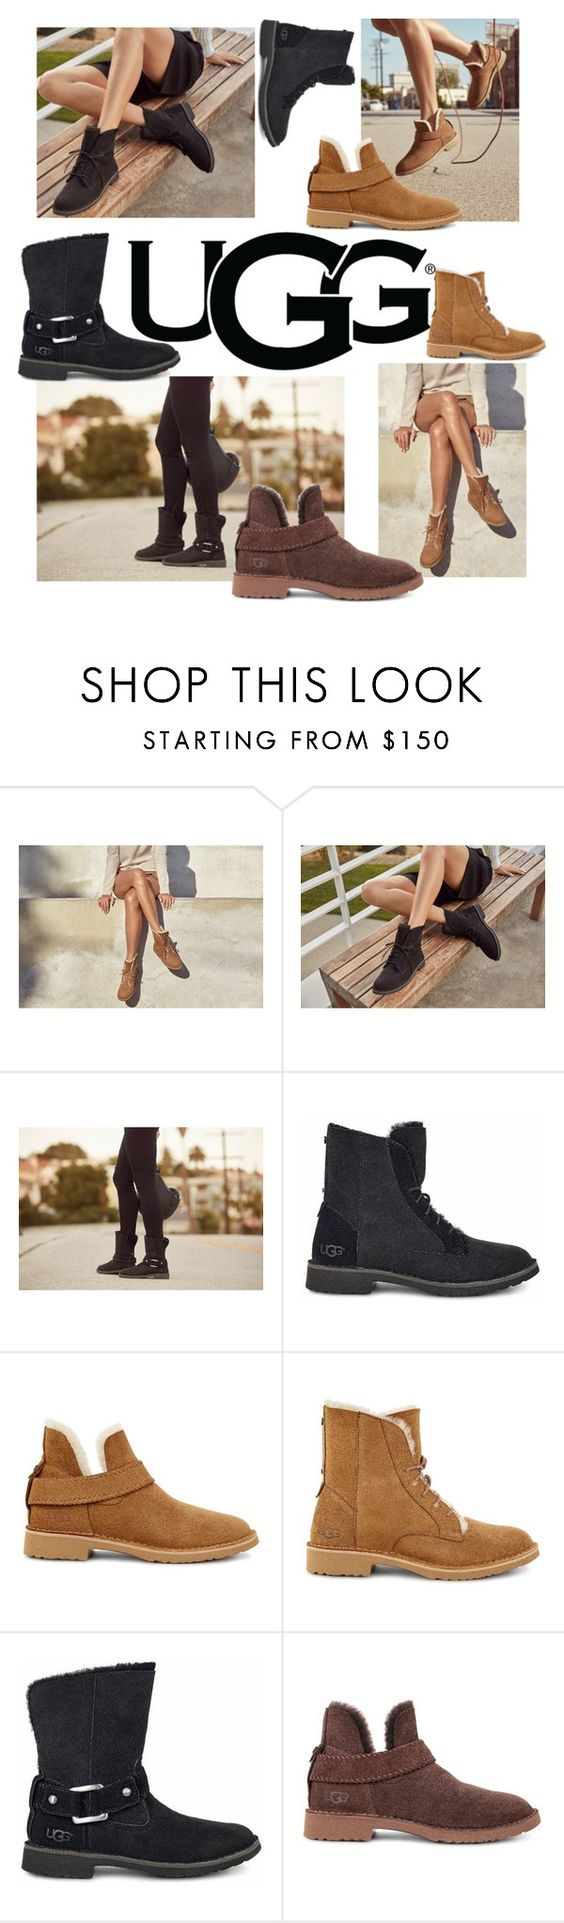 """""""The New Classics With UGG: Contest Entry"""" by loveiscolorblind ❤ liked on Polyvore featuring UGG and ugg"""